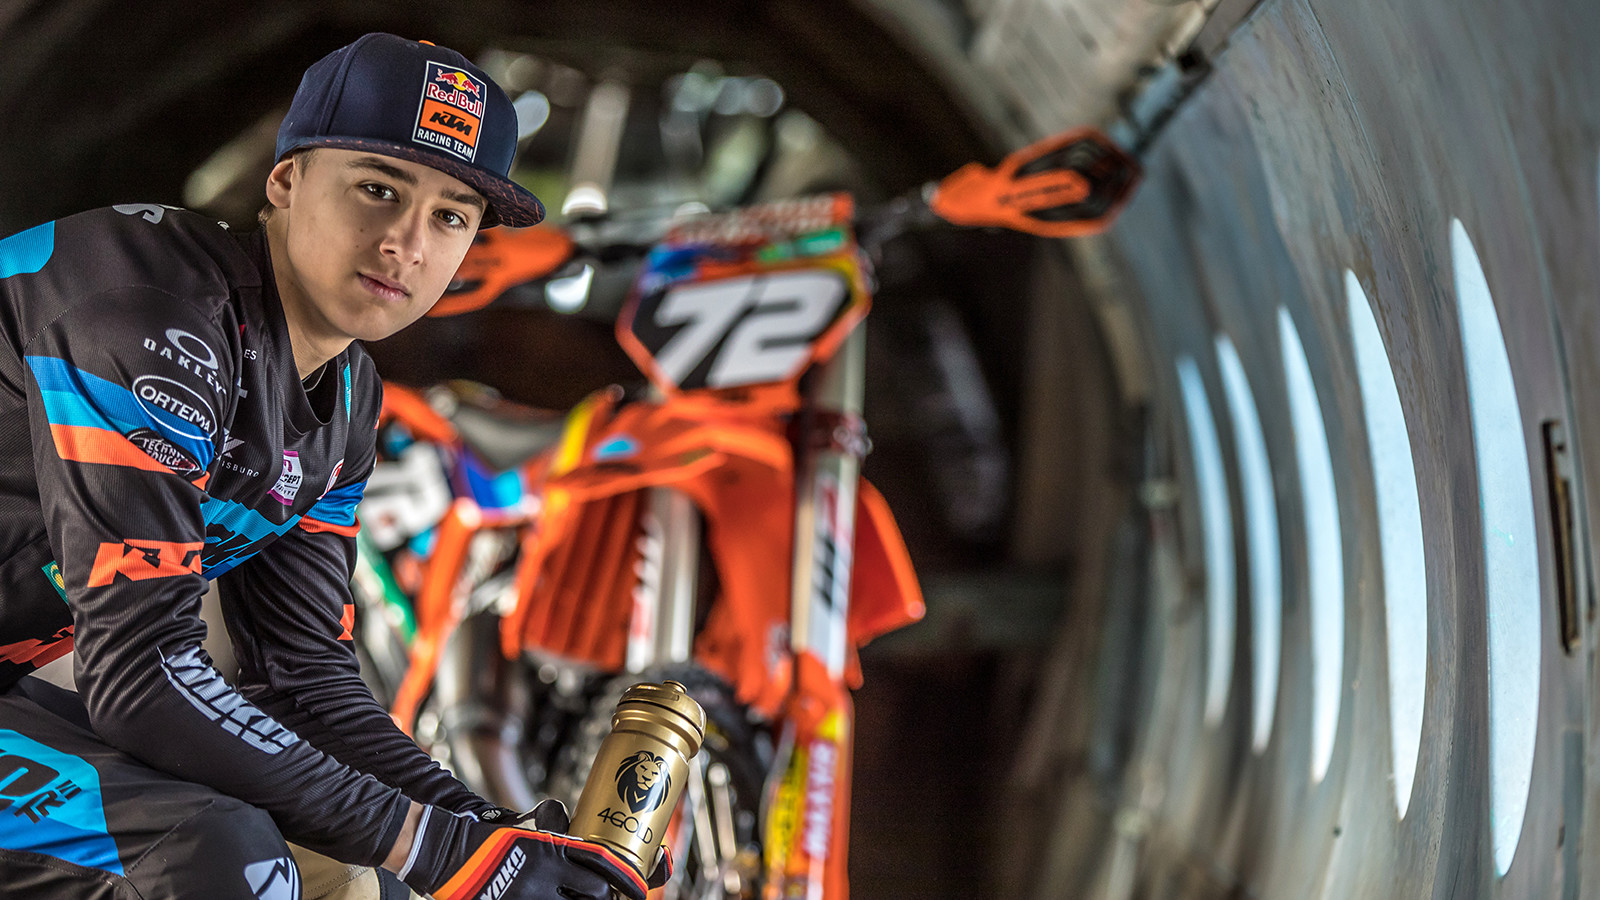 Photoshoot: Liam Everts' ready for upcoming season.